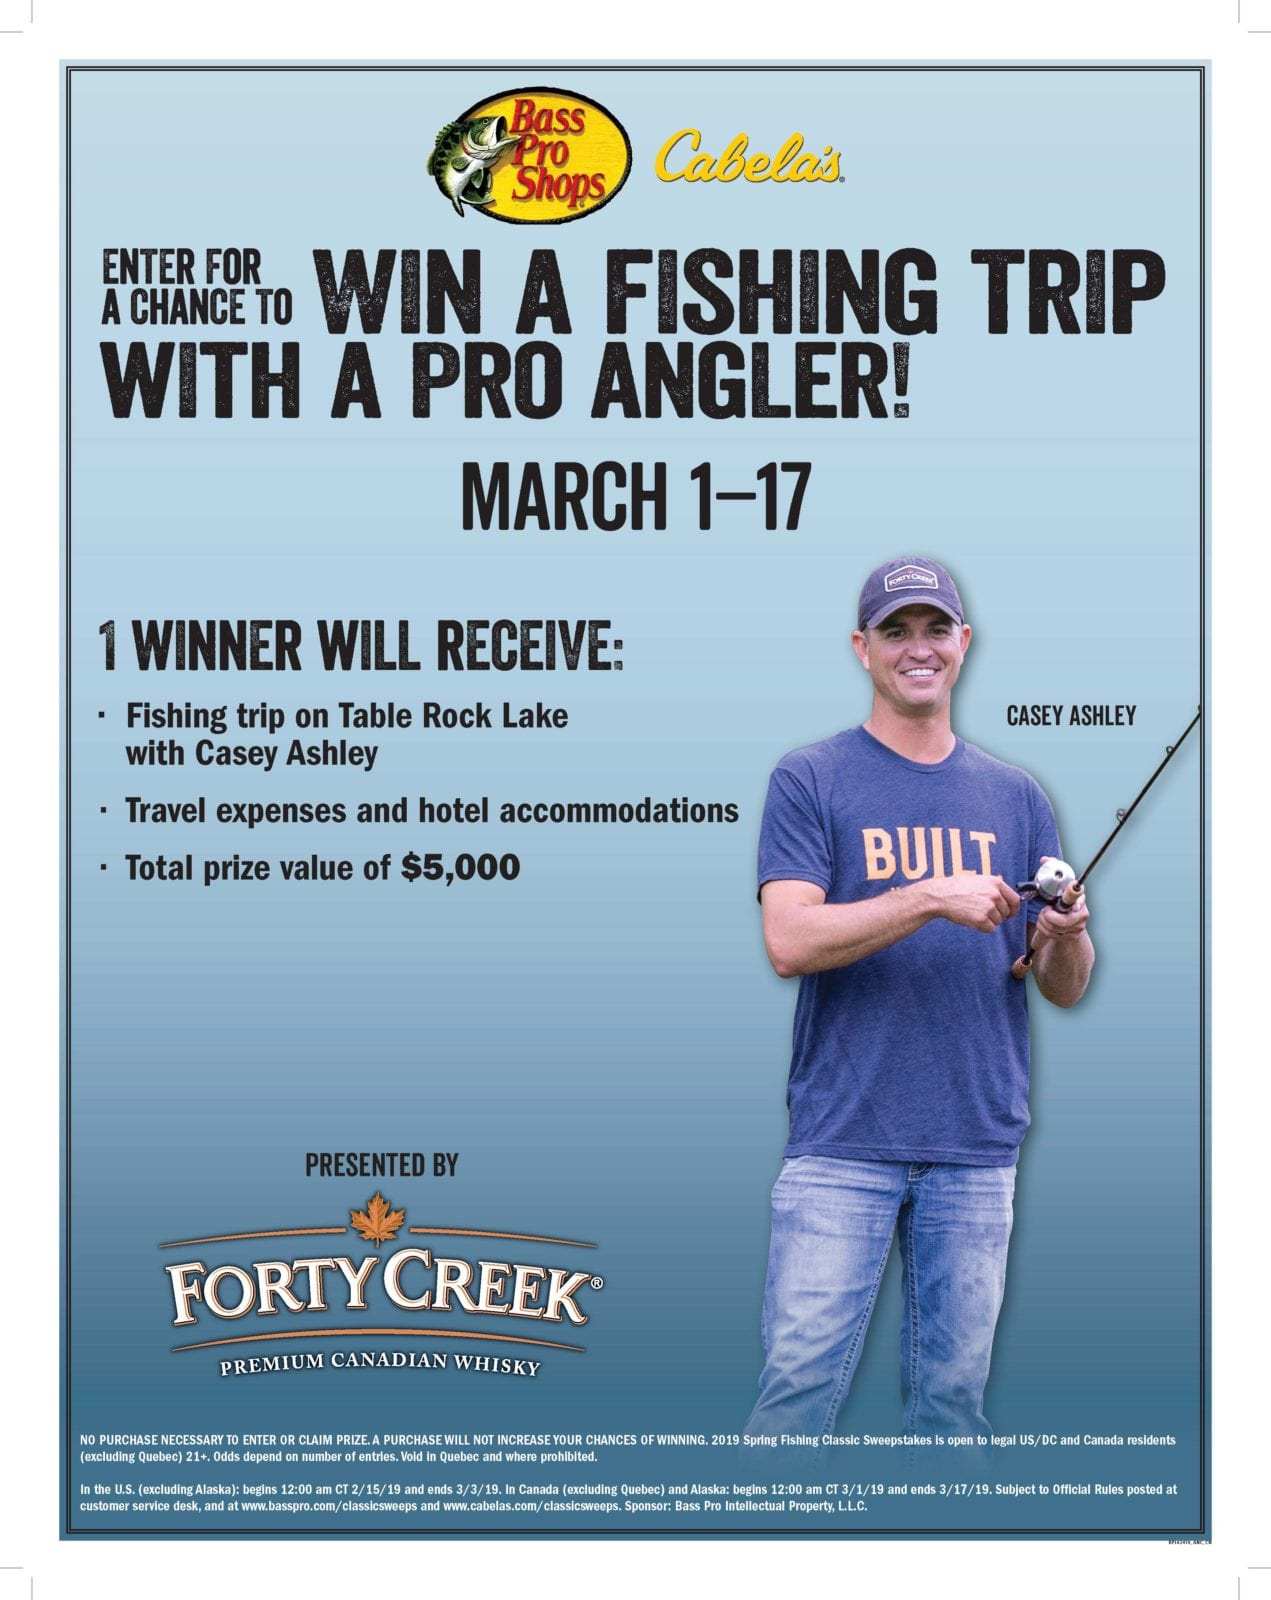 Cabelas 2019 Spring Fishing Classic Sweepstakes - Forty Creek